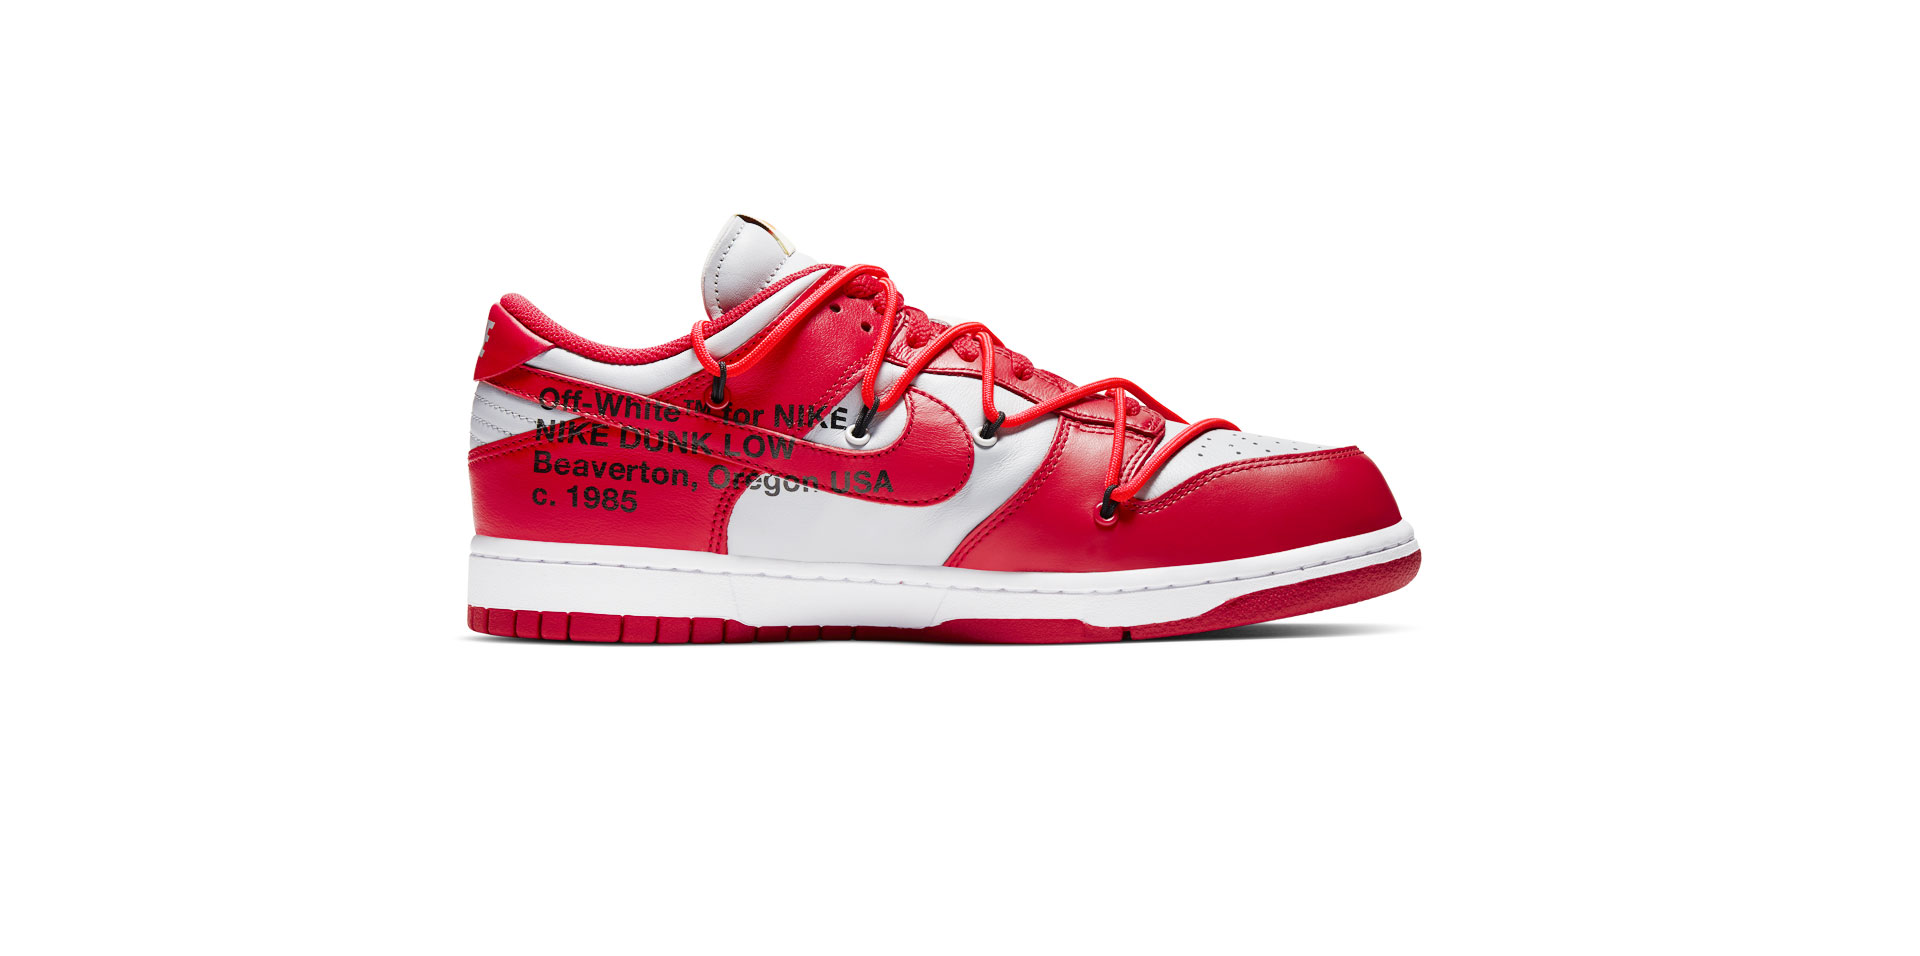 NIKE DUNK LOW LEATHER X OFF-WHITE – UNIVERSITY RED/UNIVERSITY RED-WOLF GREY